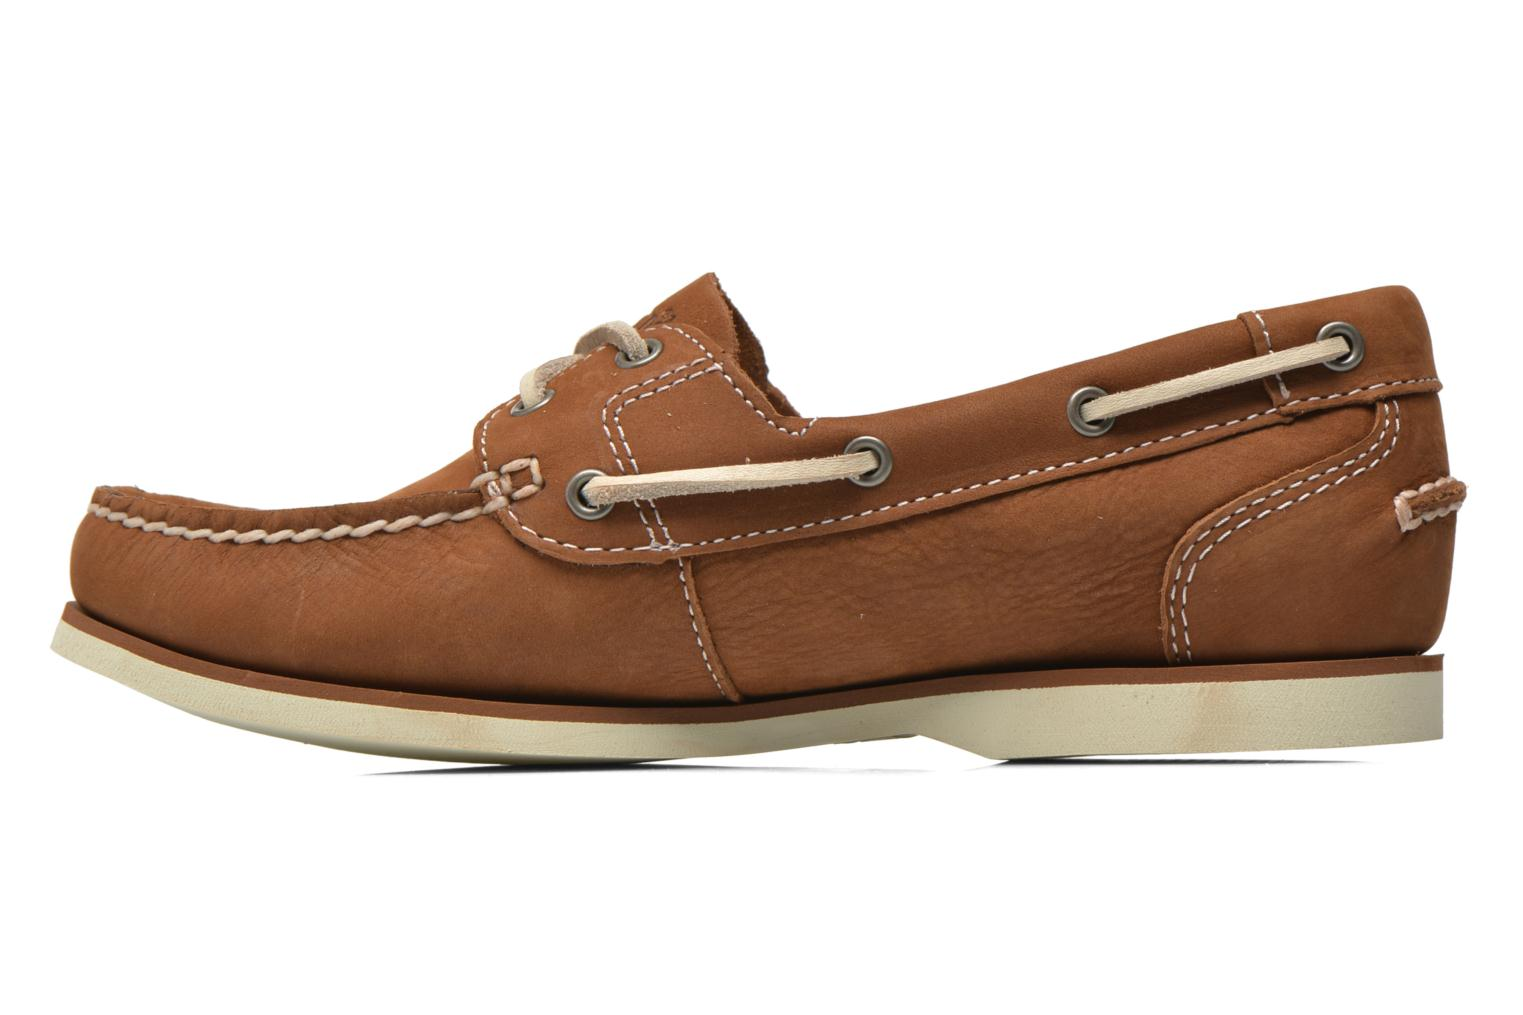 Chaussures à lacets Timberland Classic Boat Unlined Boat Shoe Marron vue face